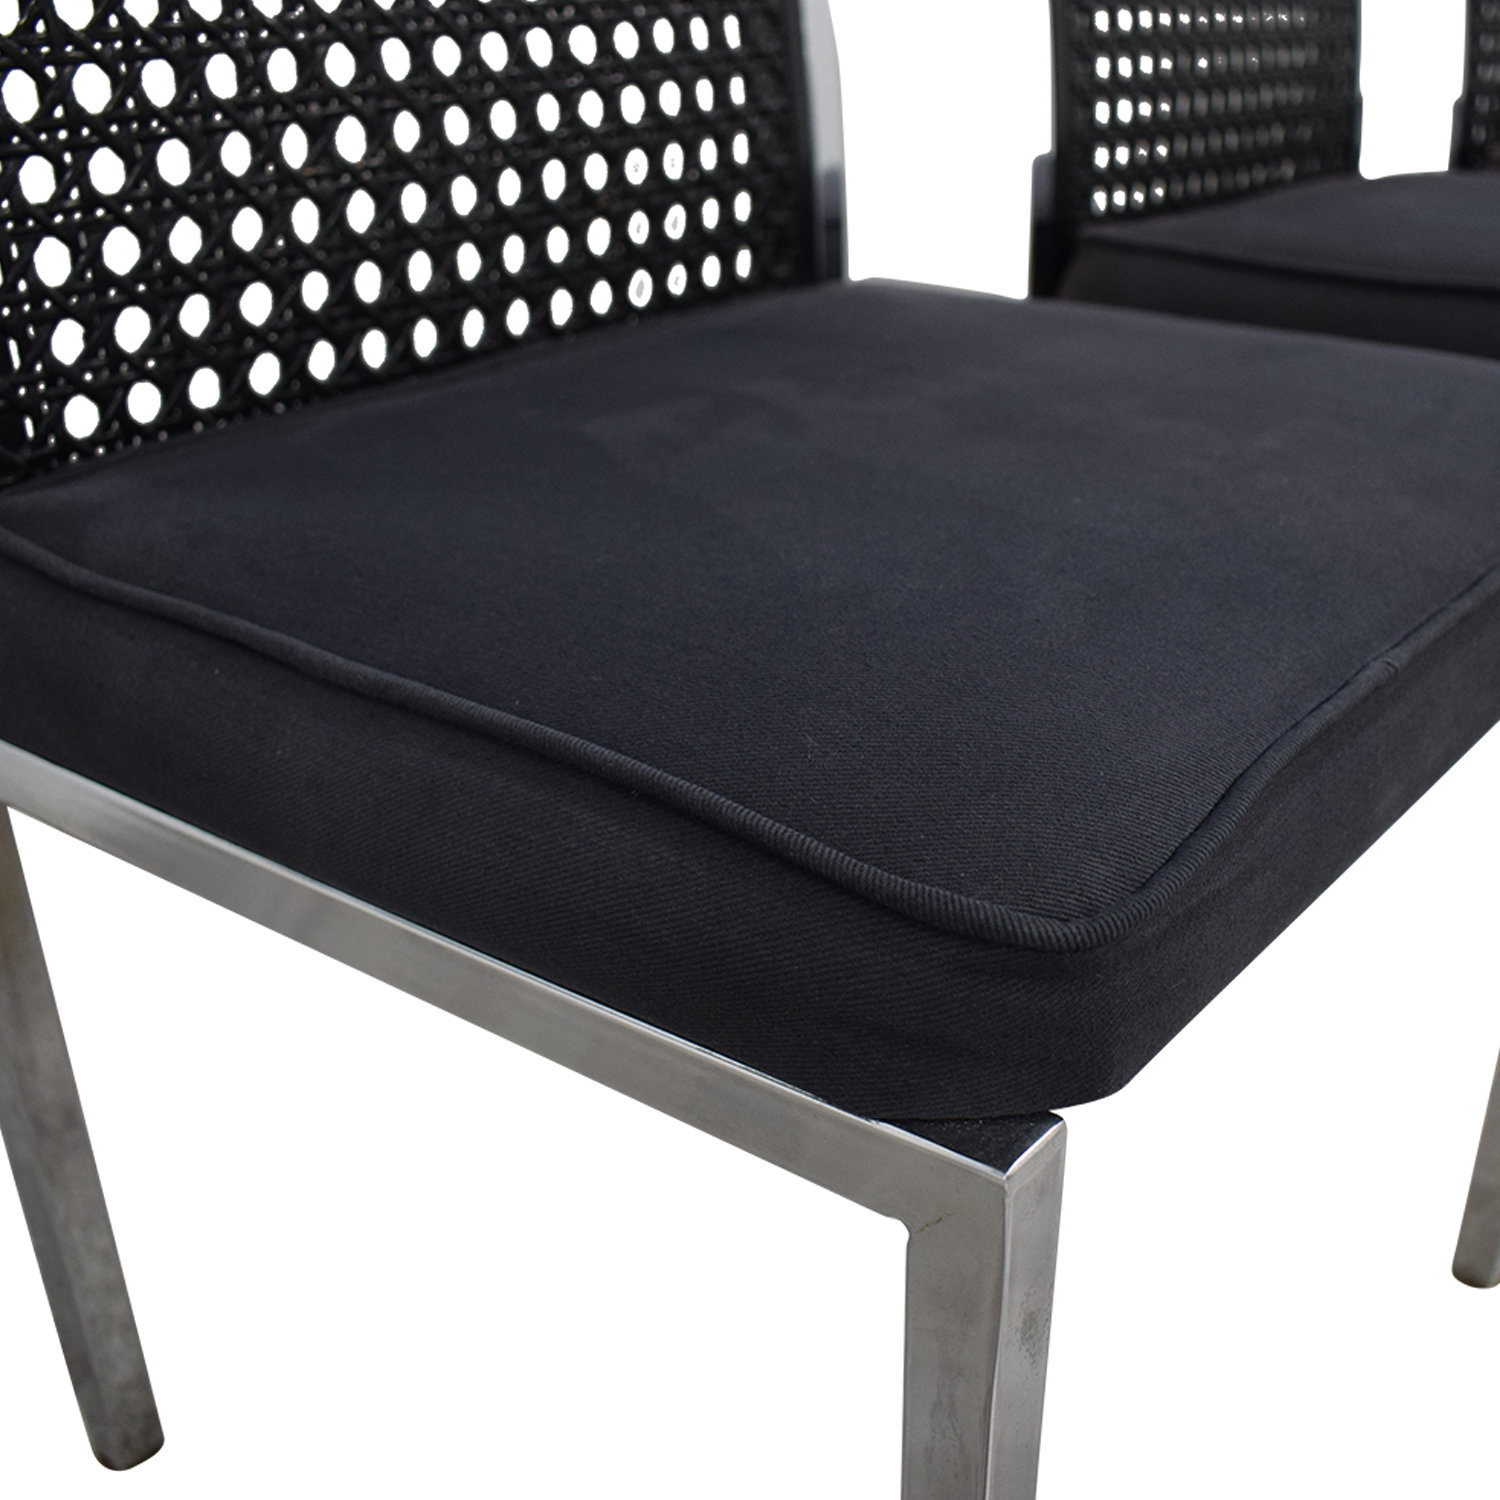 buy By Design Black Cane Back Chairs By Design Chairs